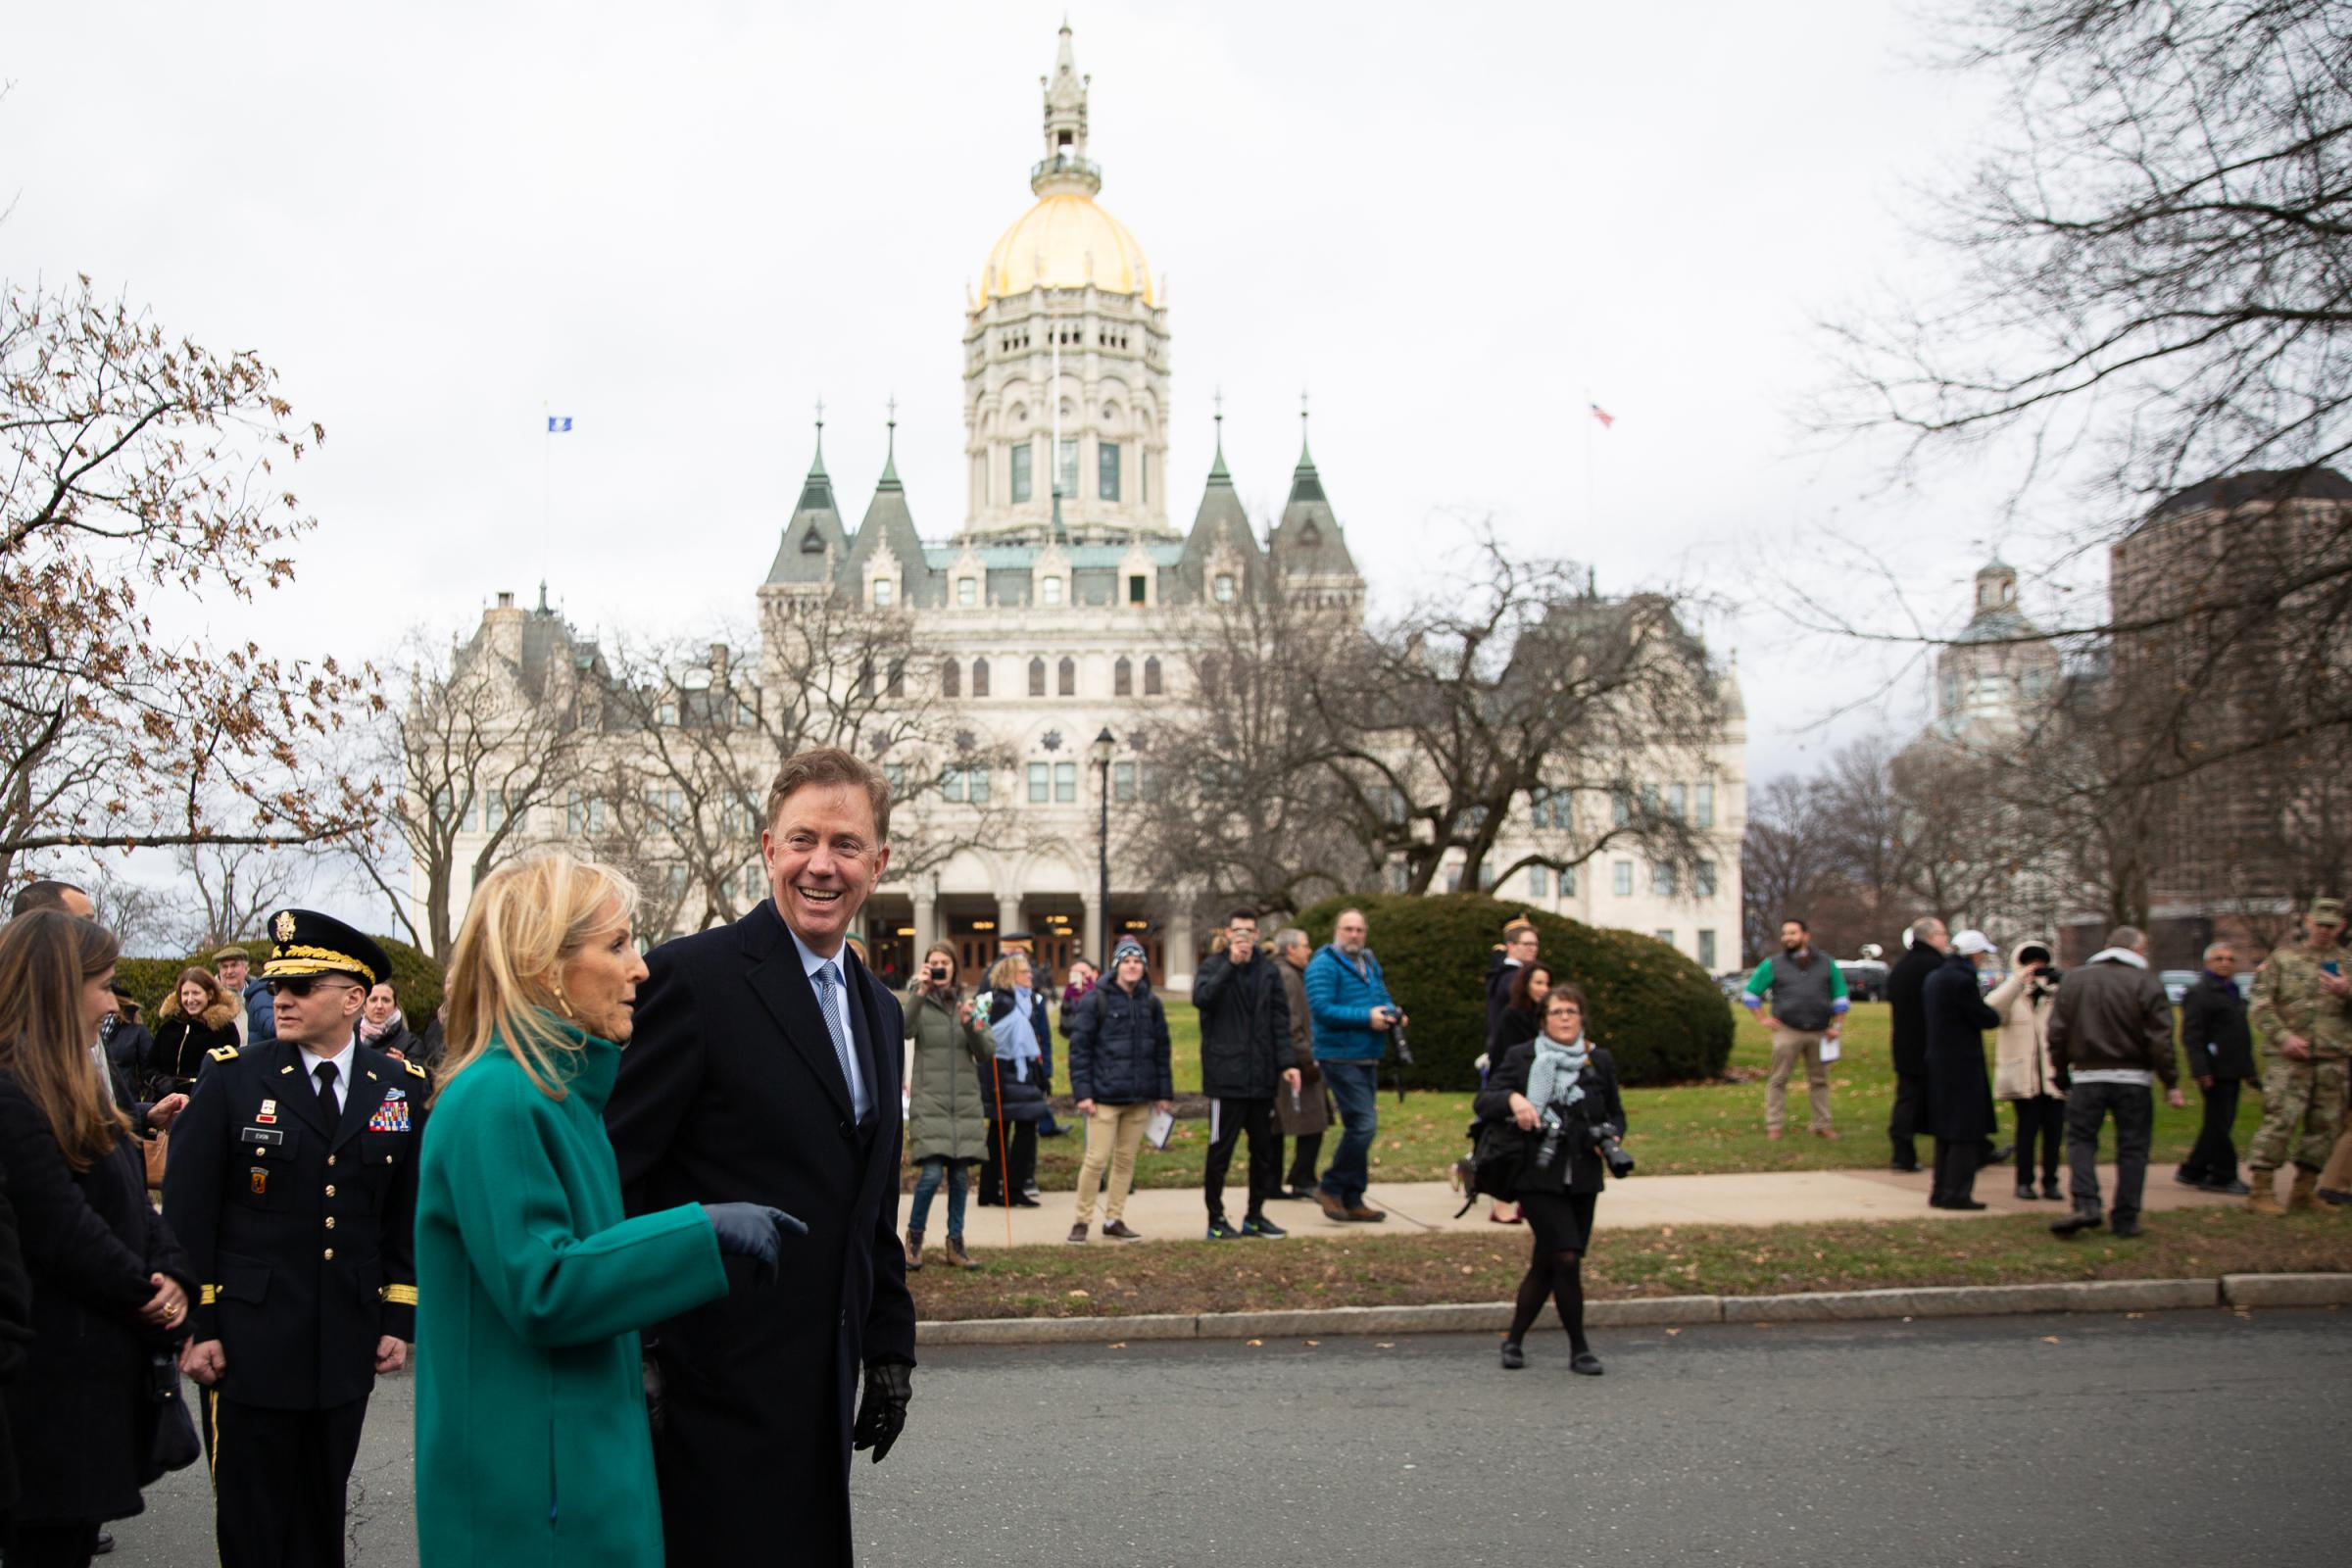 Why Is Connecticut's Inaugural Parade In The Middle Of Winter?